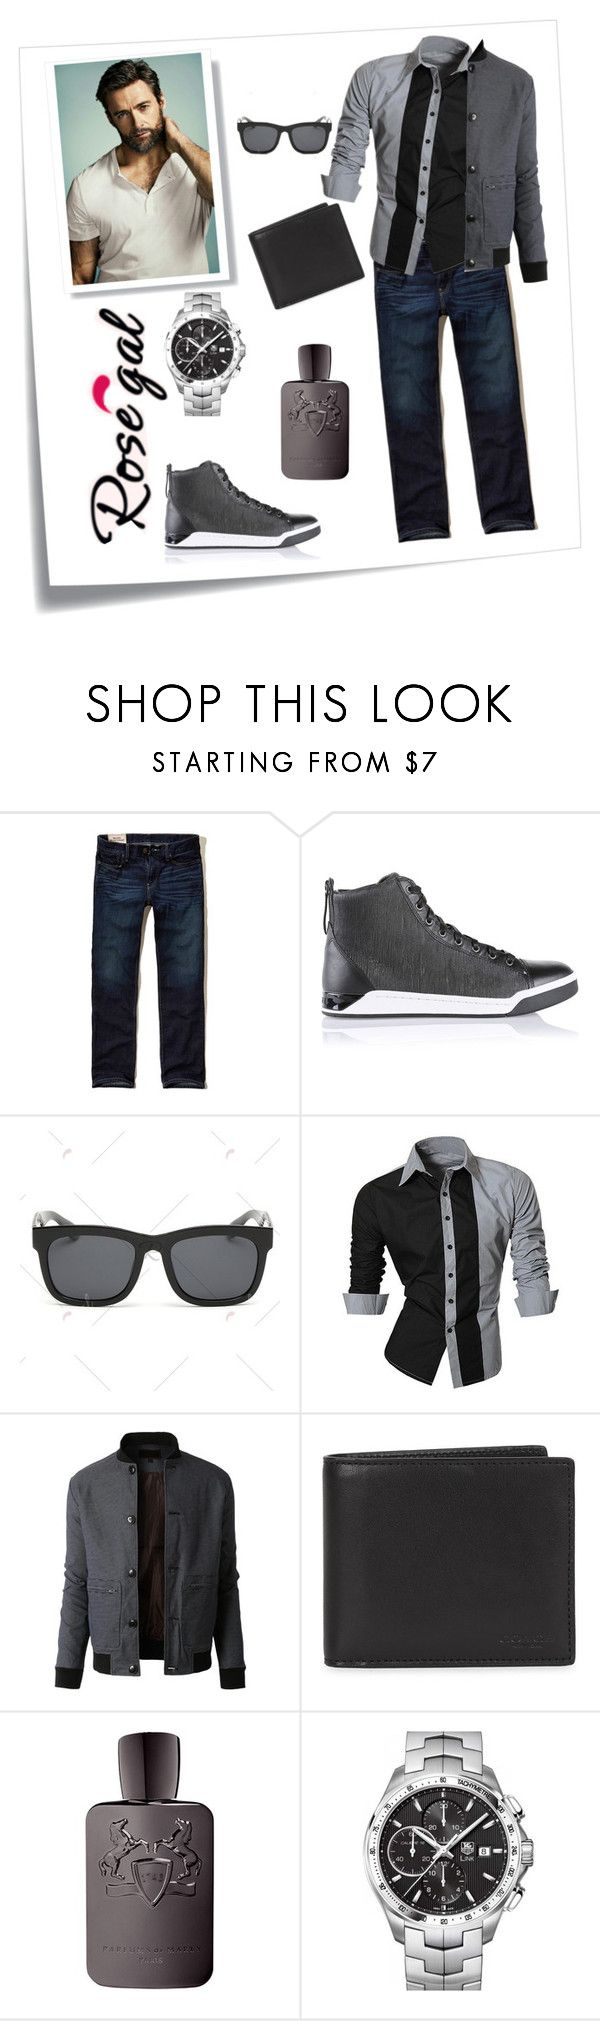 """""""Rosegal"""" by confusioninme ❤ liked on Polyvore featuring Post-It, Hollister Co., Diesel, LE3NO, Coach, Parfums de Marly, TAG Heuer, men's fashion and menswear"""